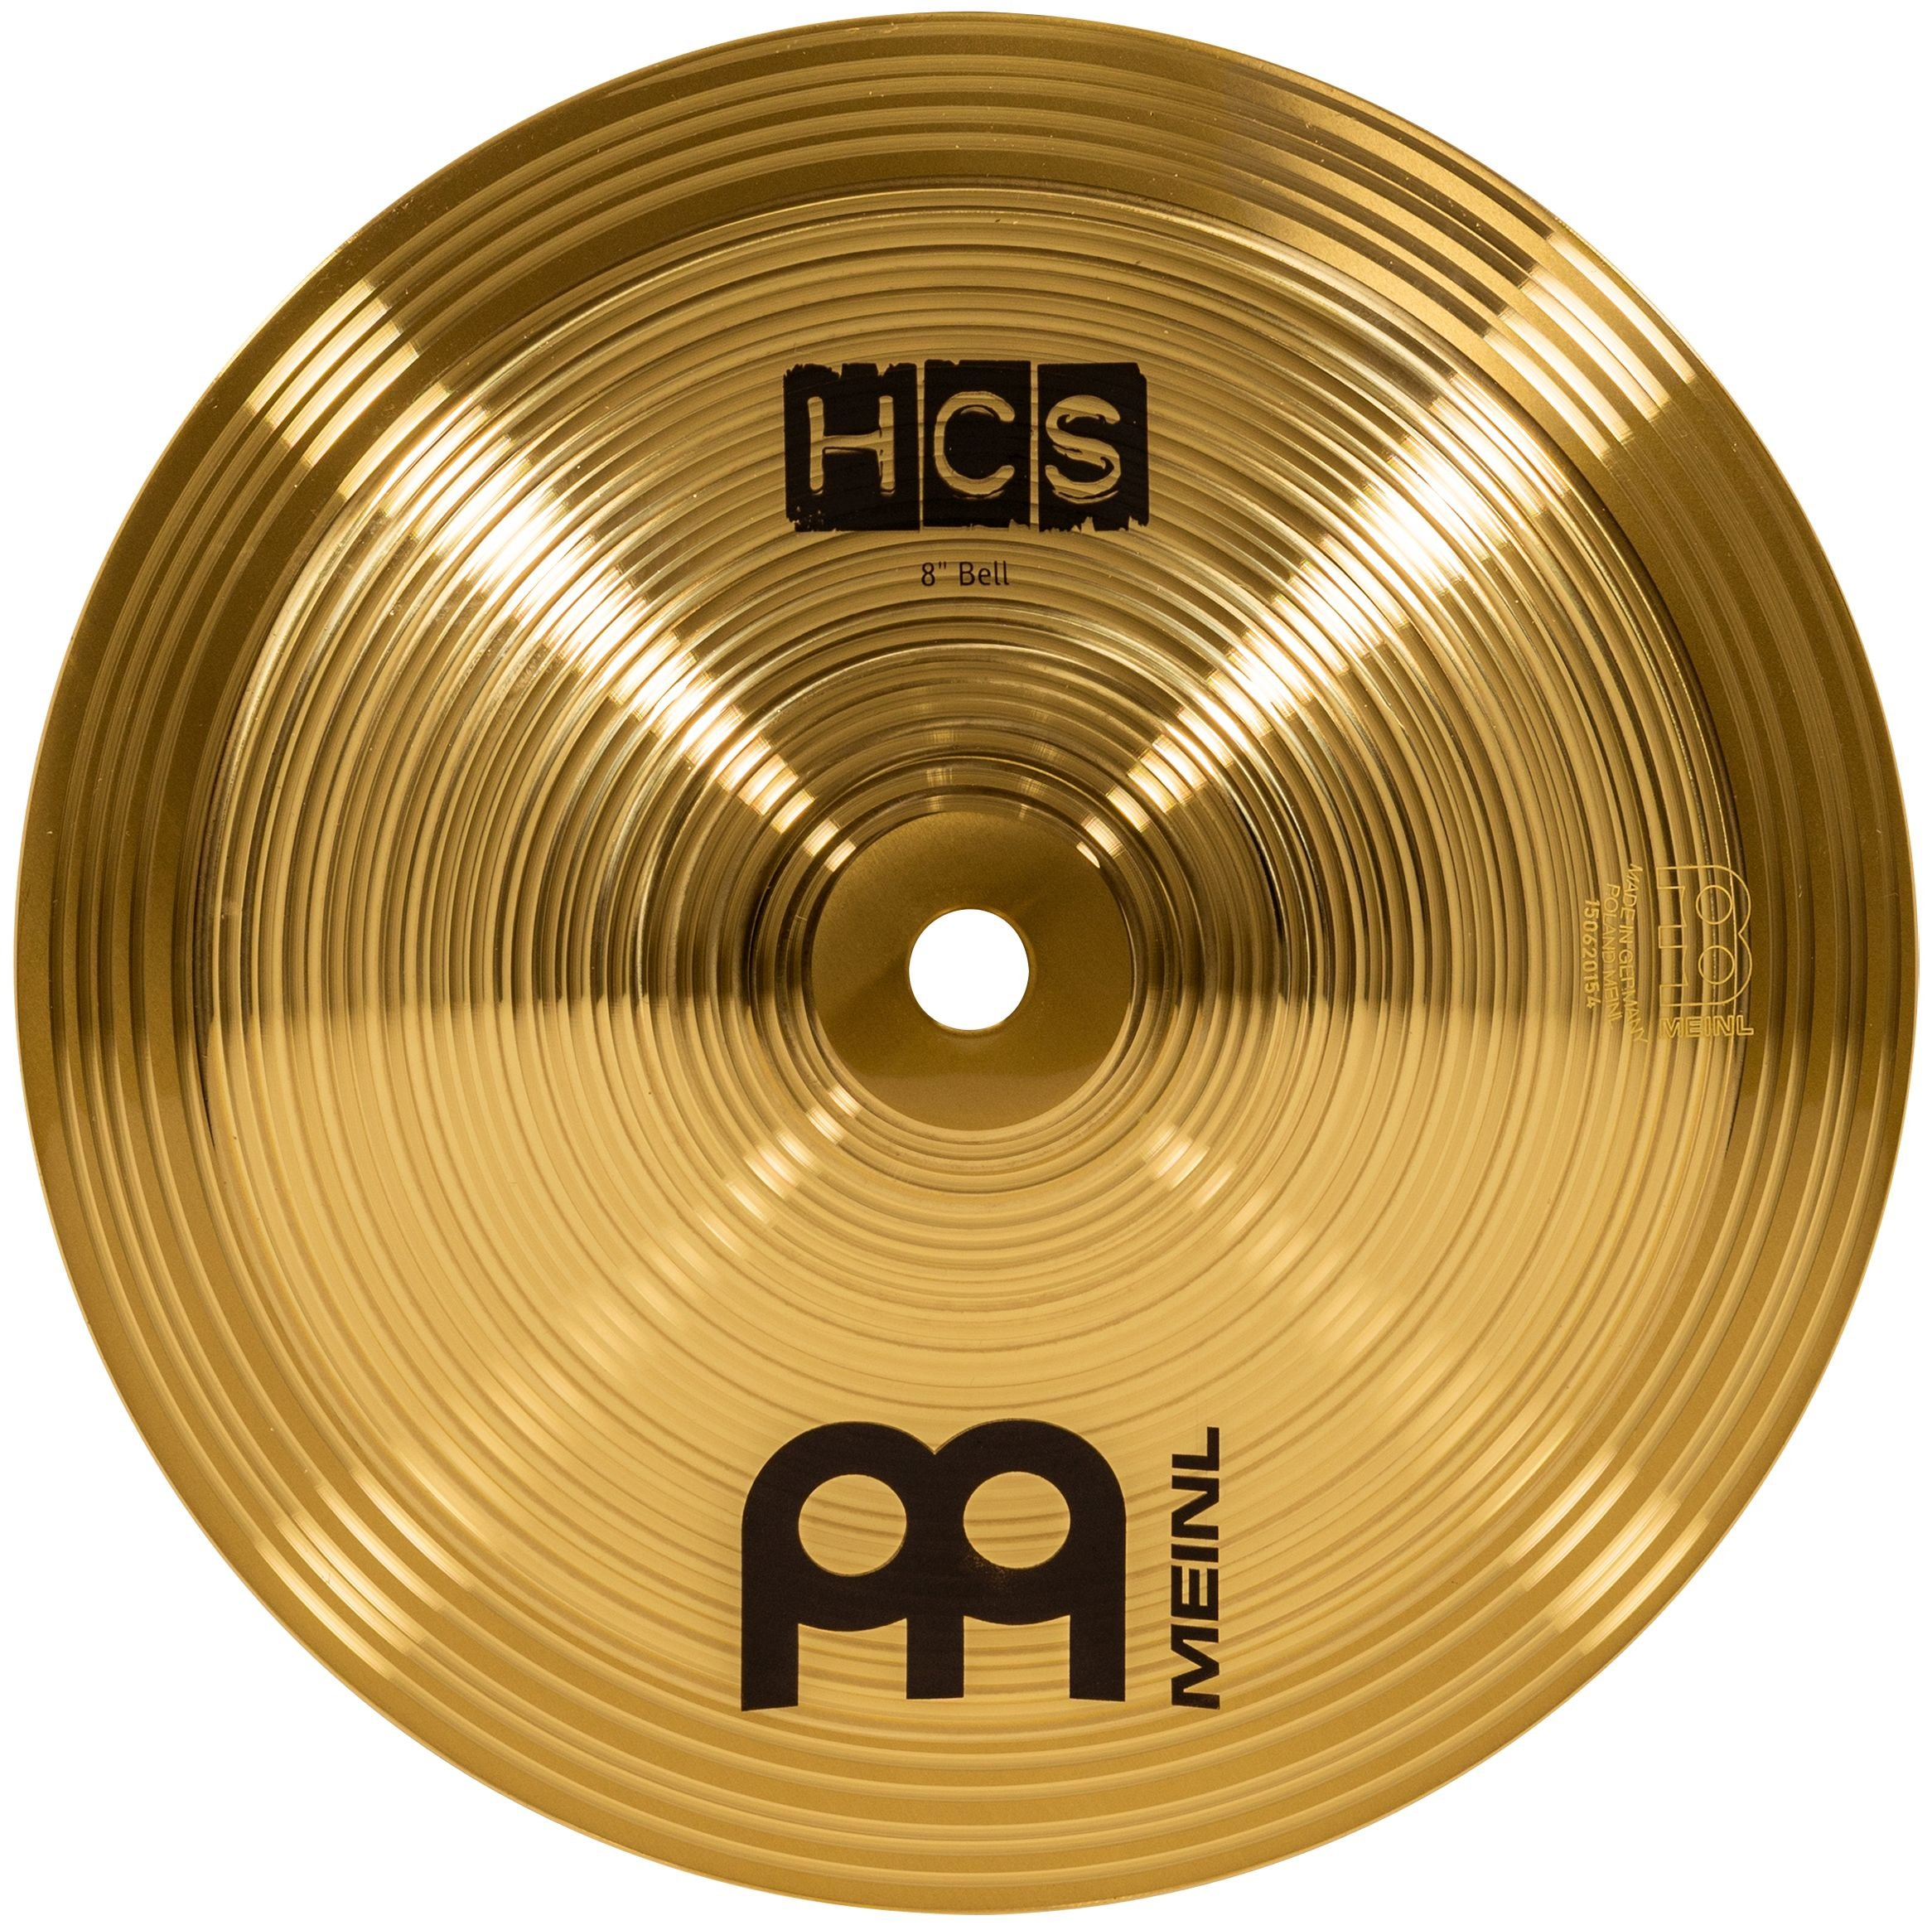 Meinl 8'' Bell - HCS Traditional Finish Brass for Drum Set, Made In Germany, 2-YEAR WARRANTY (HCS8B)